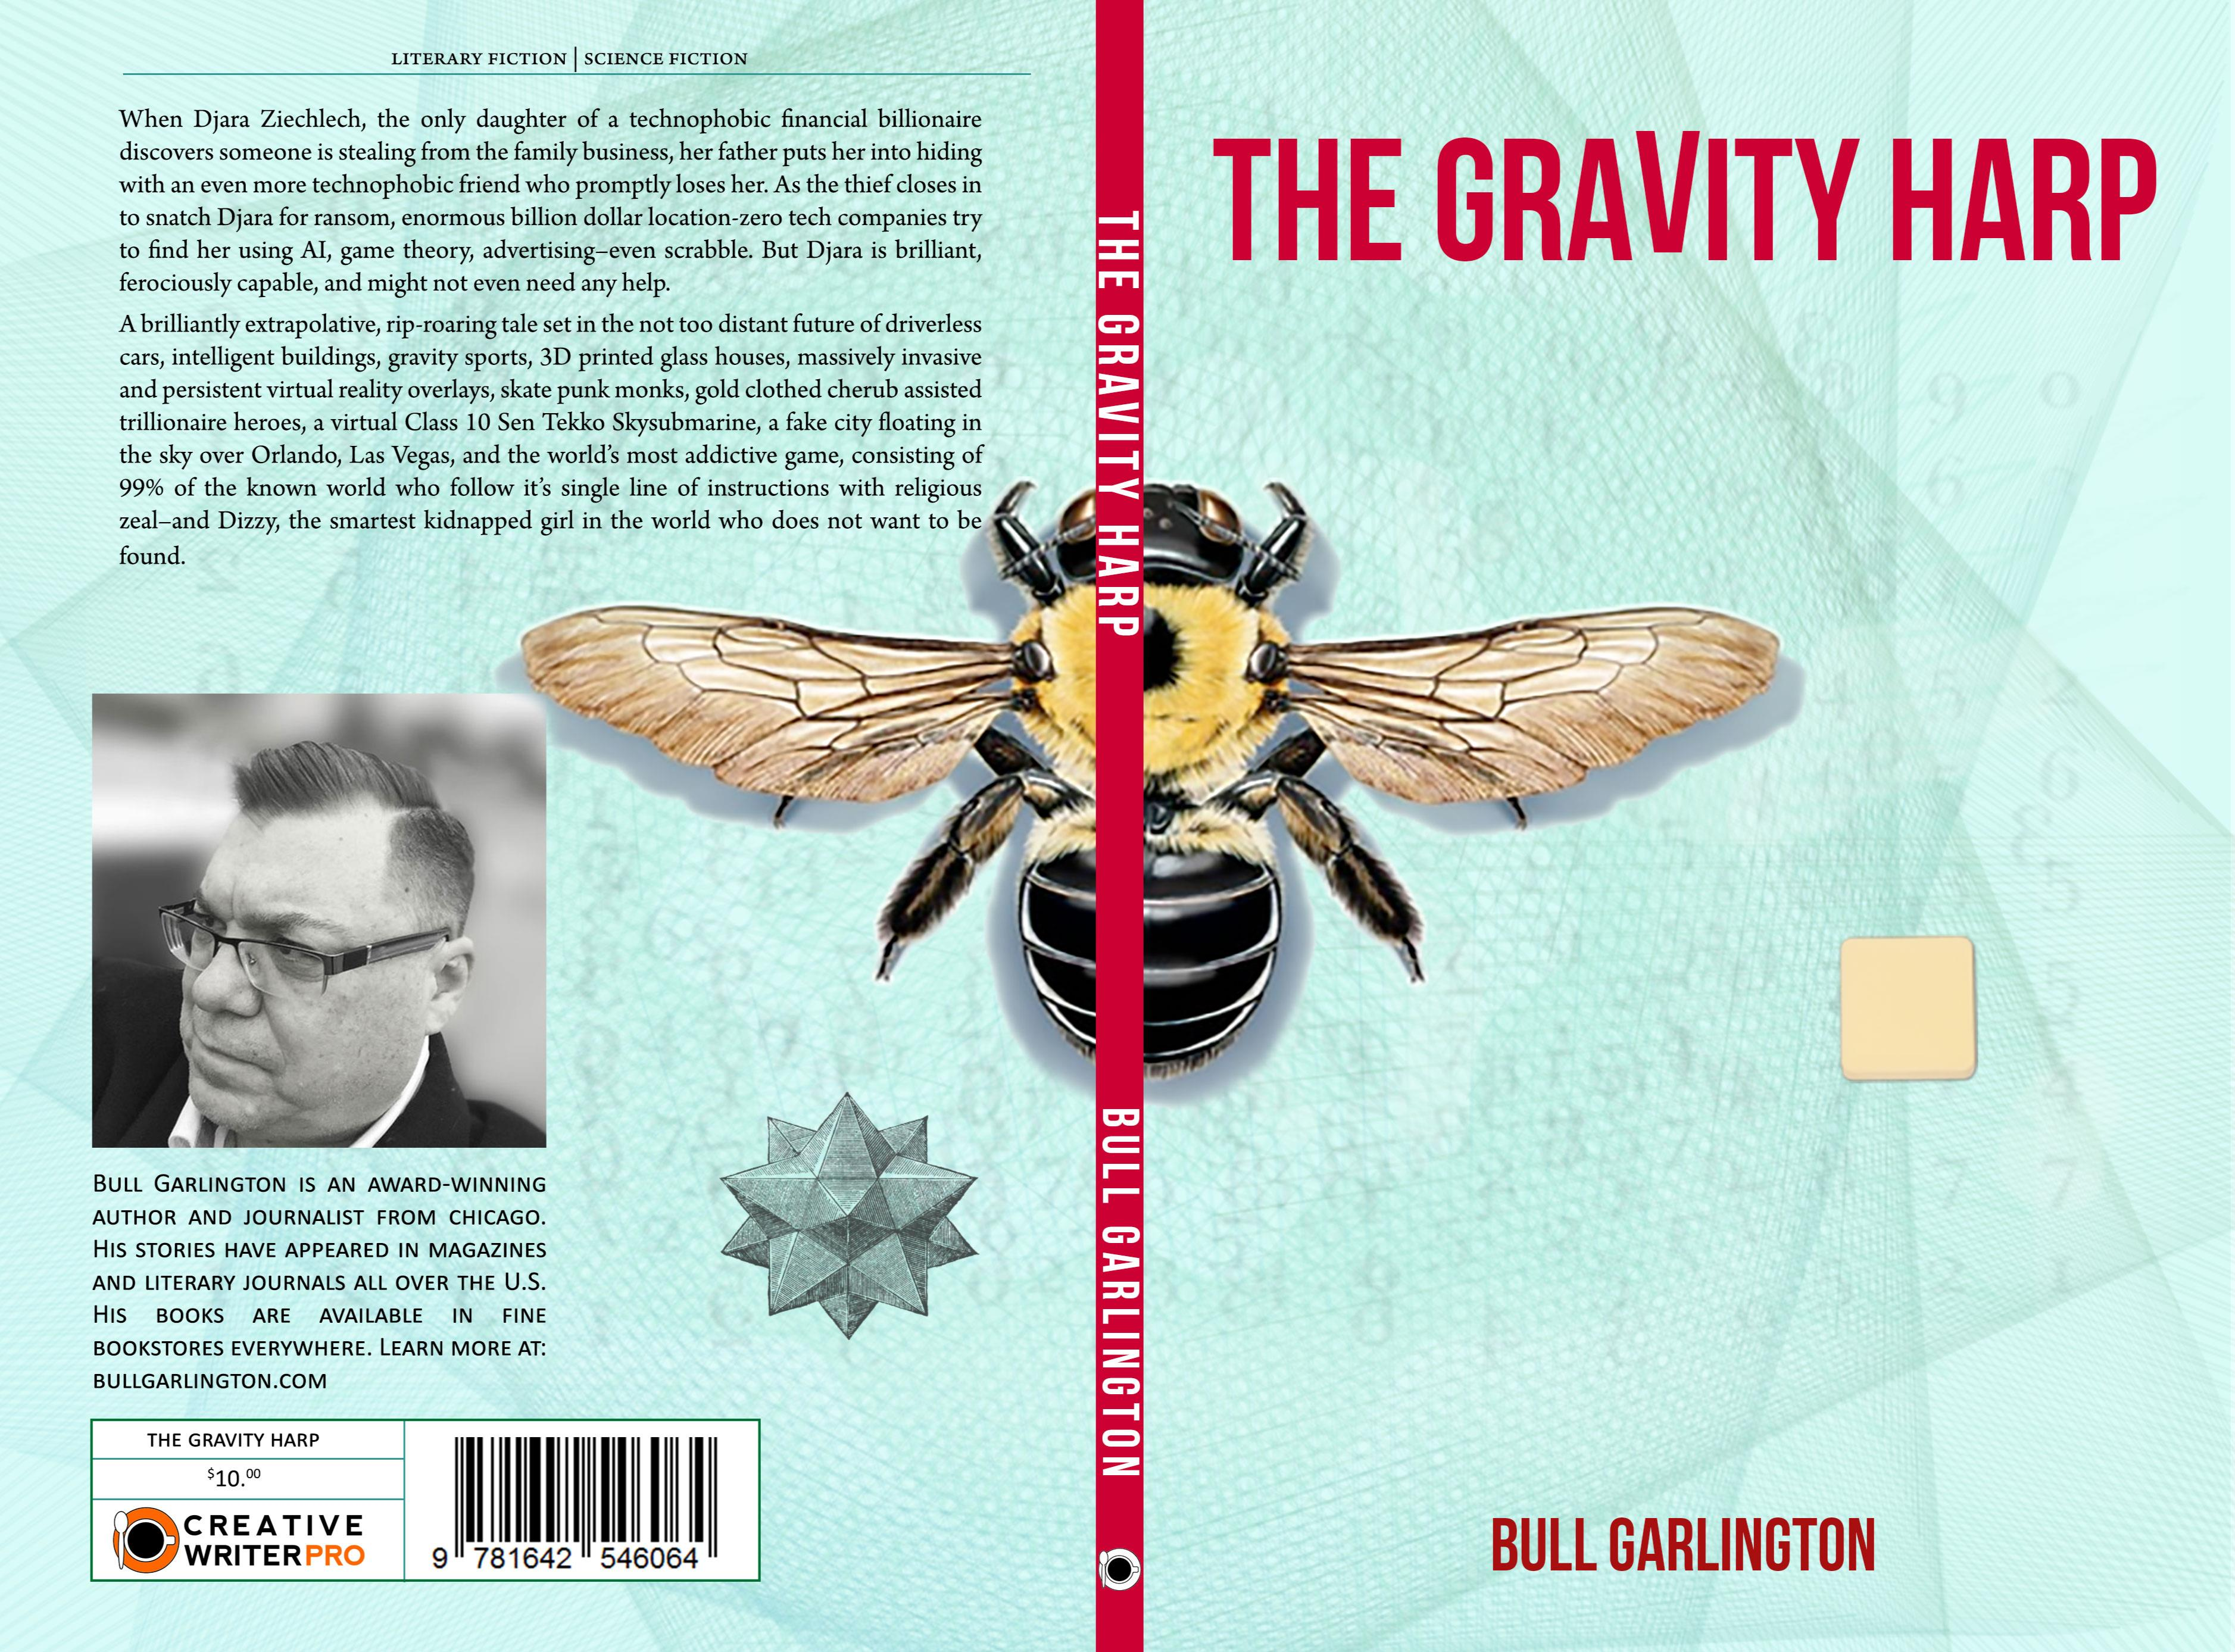 The Gravity Harp cover image